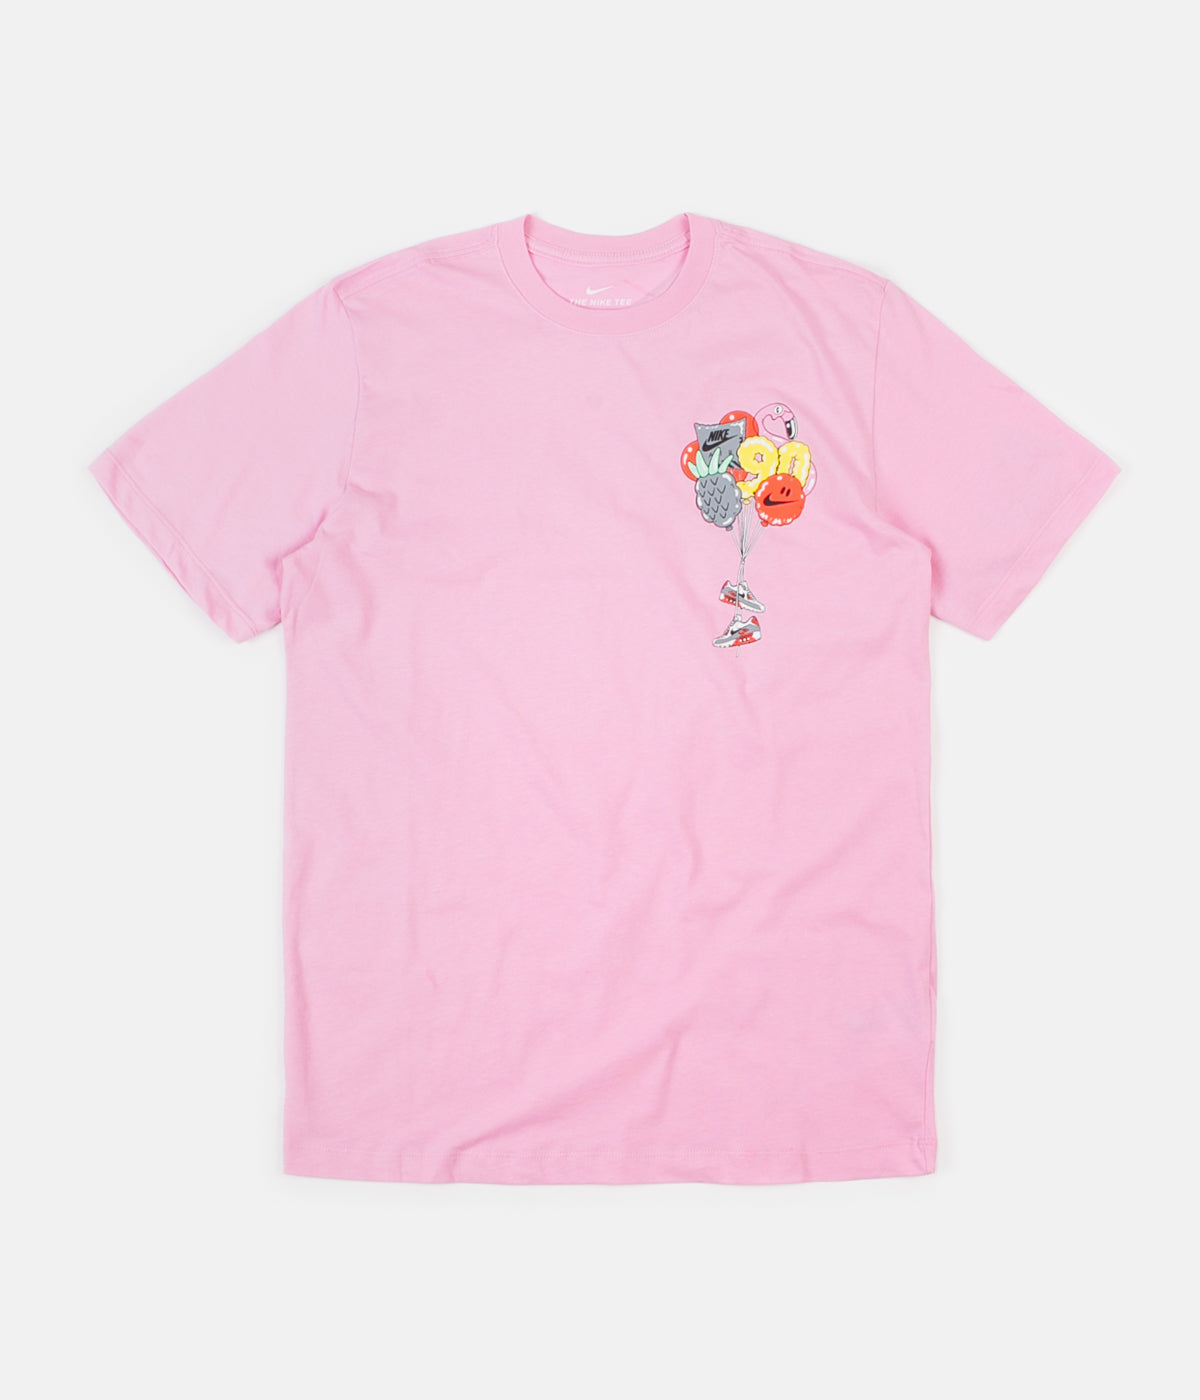 88b253d9ad0f6 ... Nike Seasonal Air Max 2 T-Shirt - Pink Rush ...